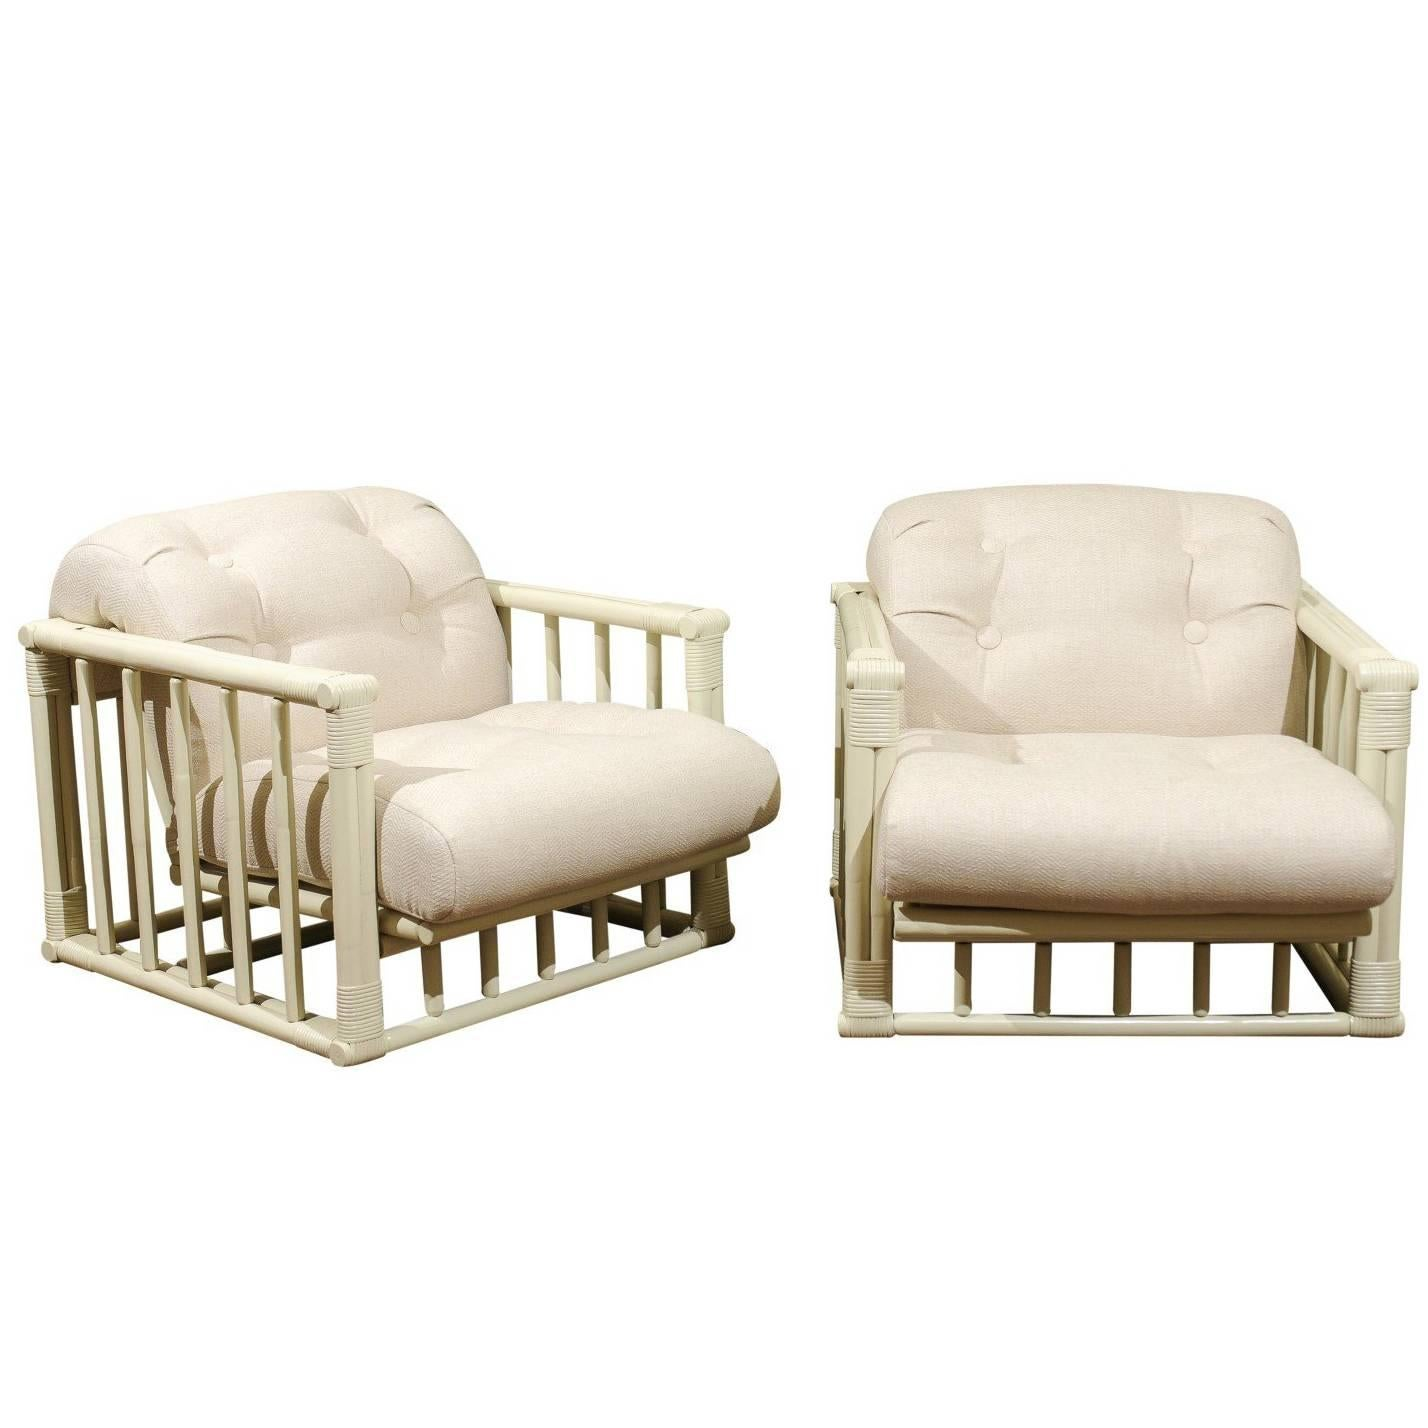 Killer Restored Pair of Rattan and Cane Cube Loungers by Ficks Reed, circa 1970